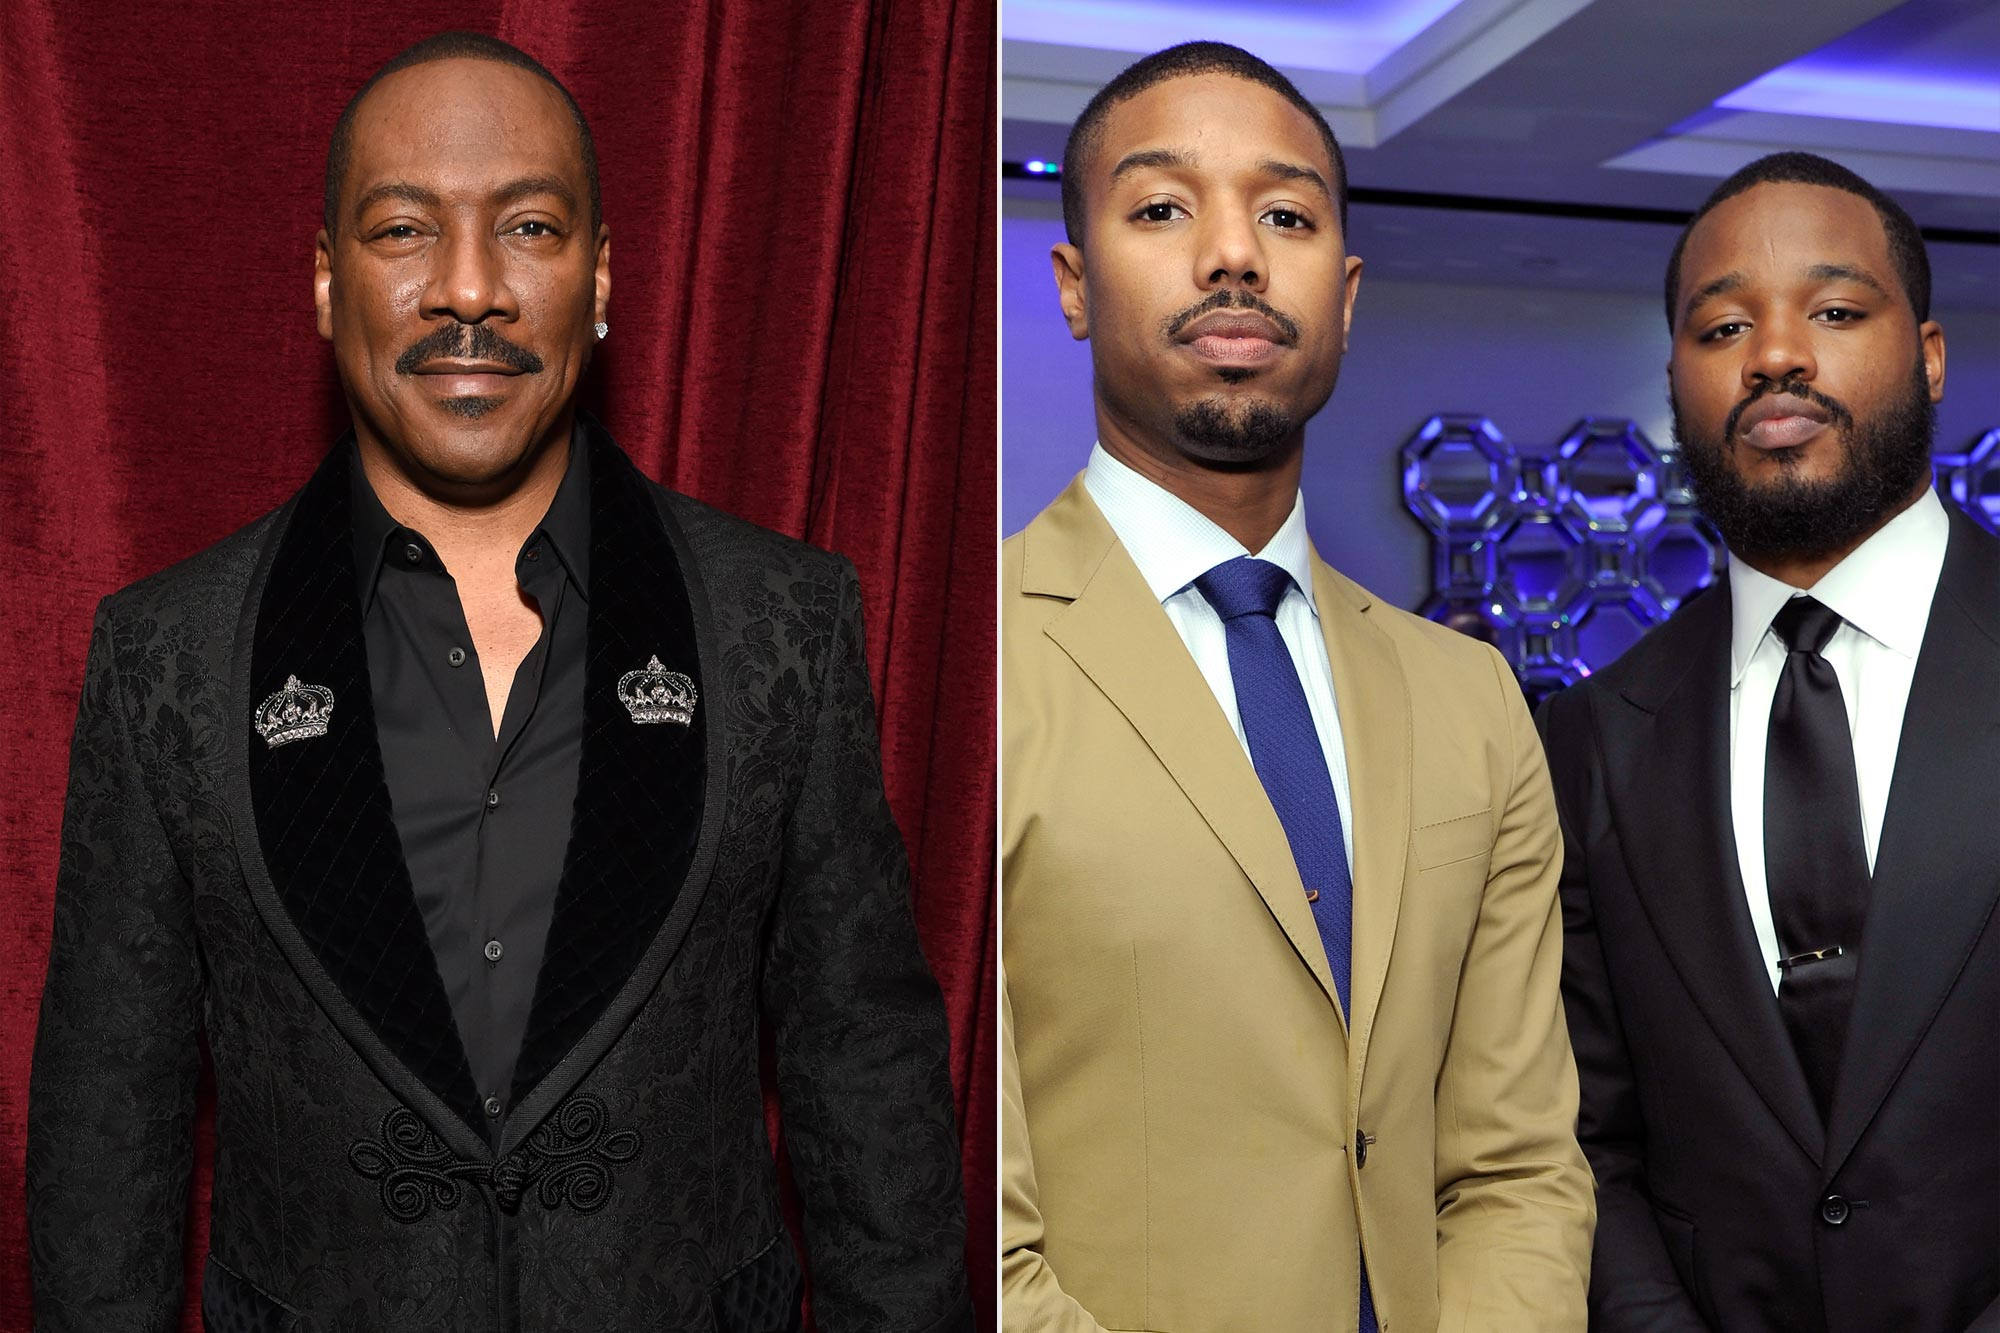 Eddie Murphy; Michael B. Jordan and Director Ryan Coogler